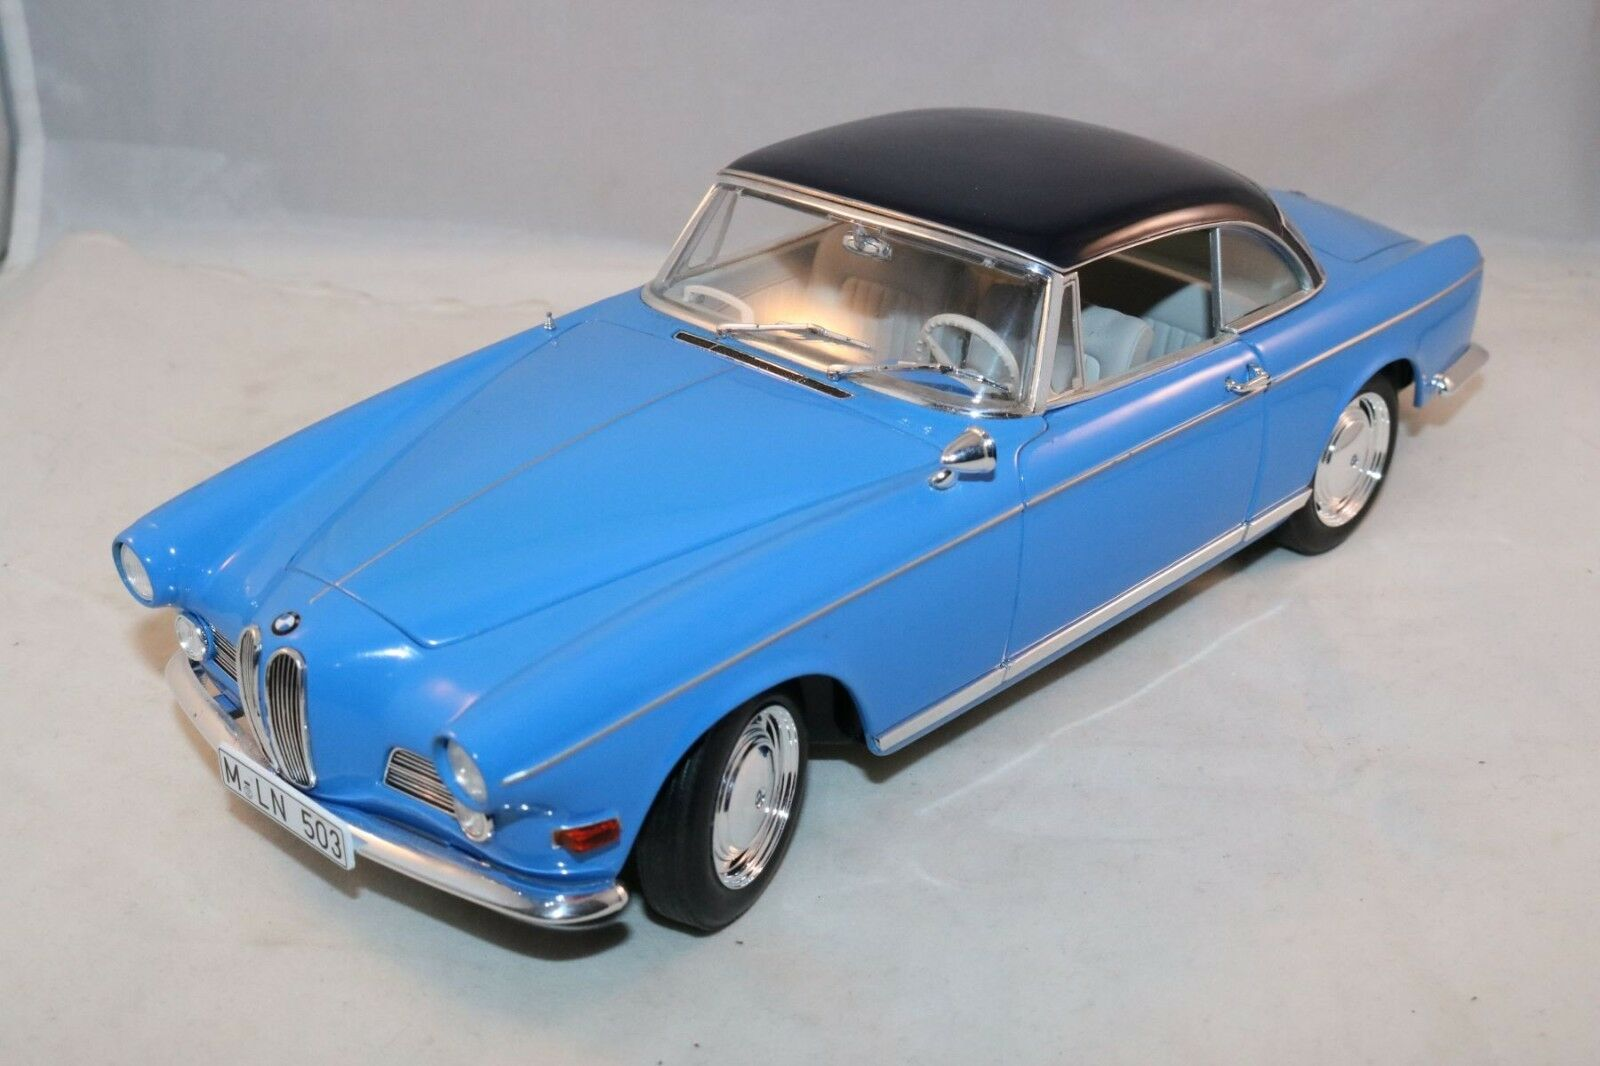 JADI BMW 503 Coupe  1956  (blue bluee) 1 18 99% mint all original condition